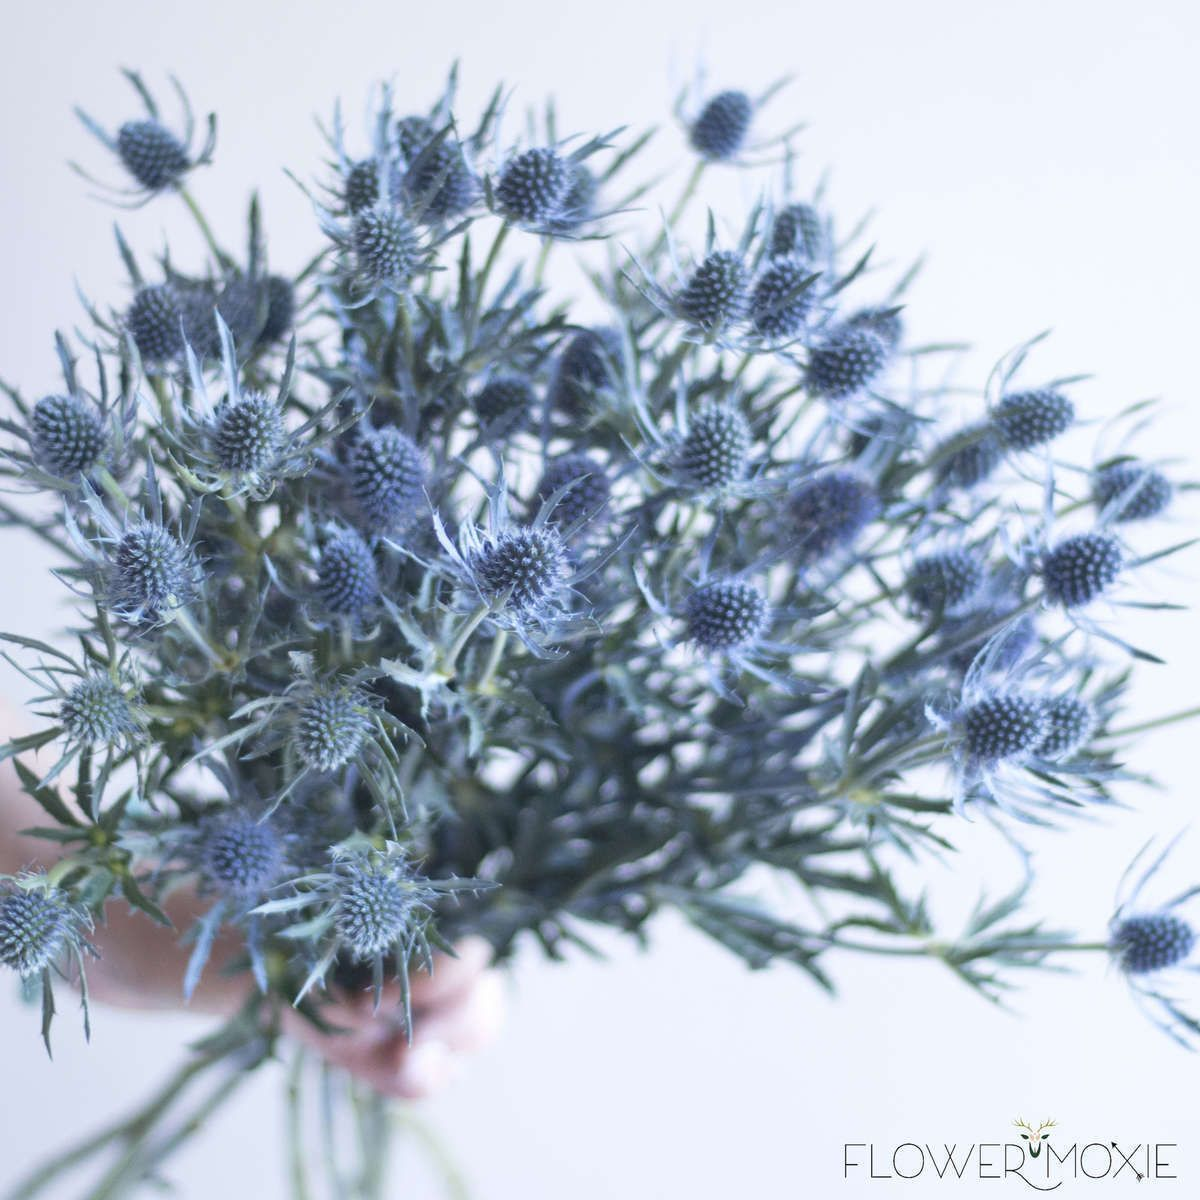 Thistle in 2020 Wedding flower guide, Blue wedding